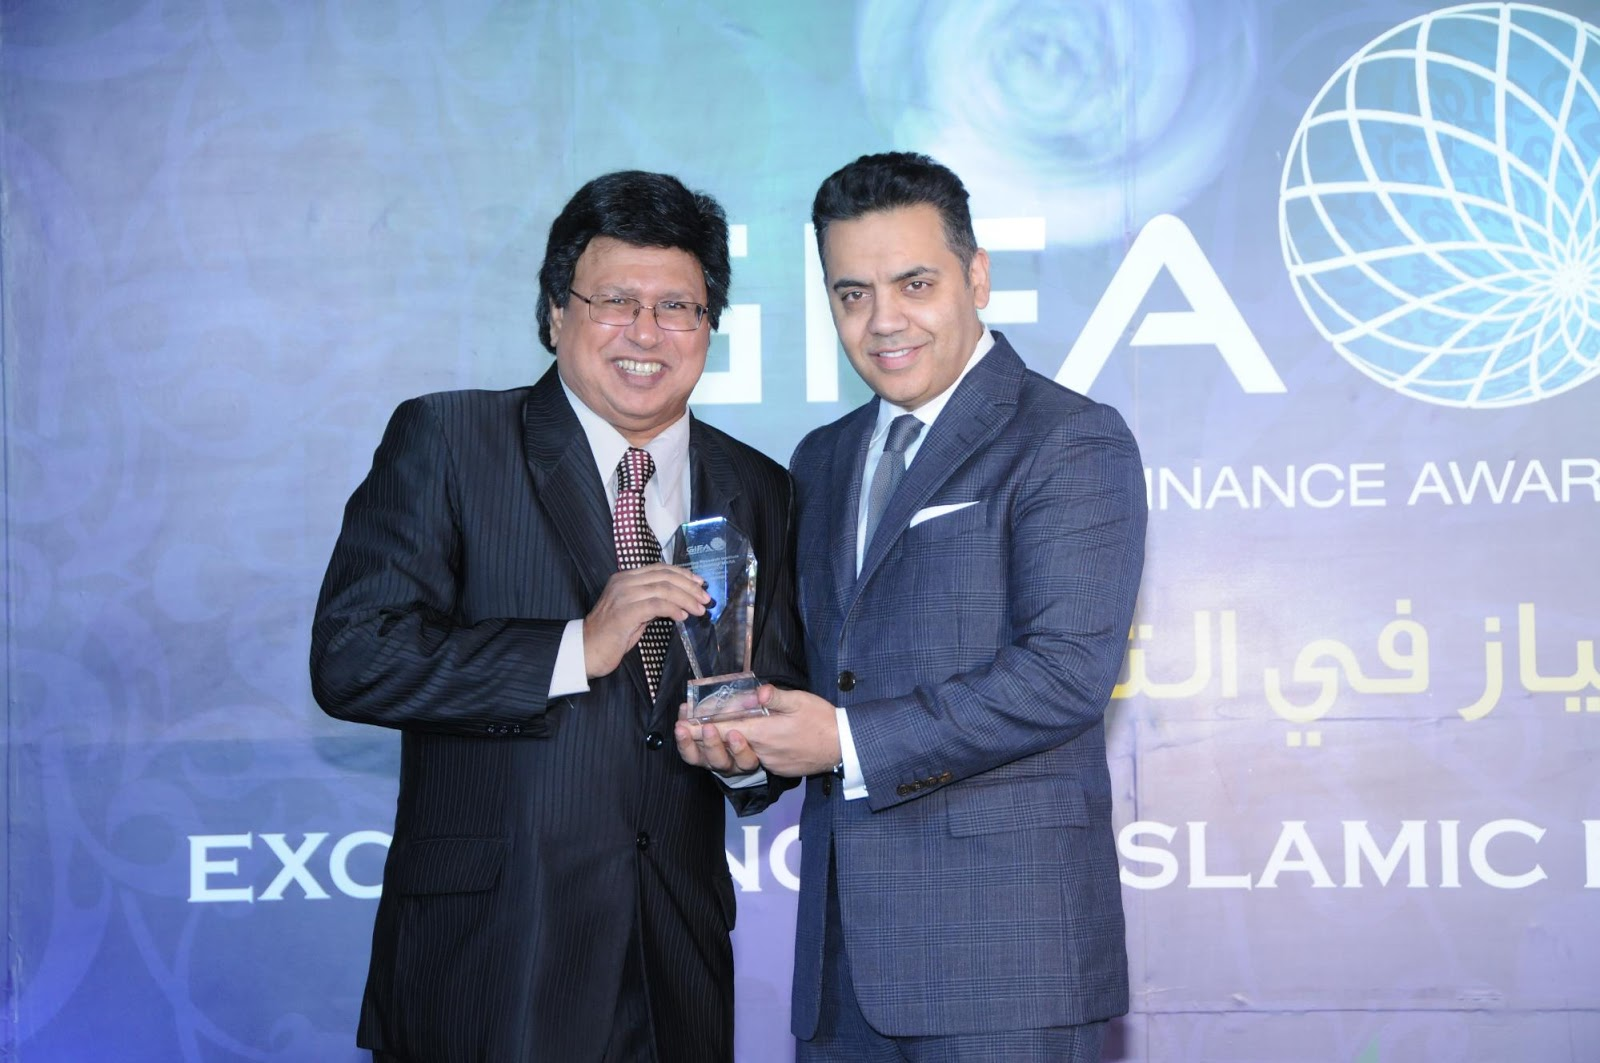 WINNER of Global Islamic Finance Awards GIFA 2014